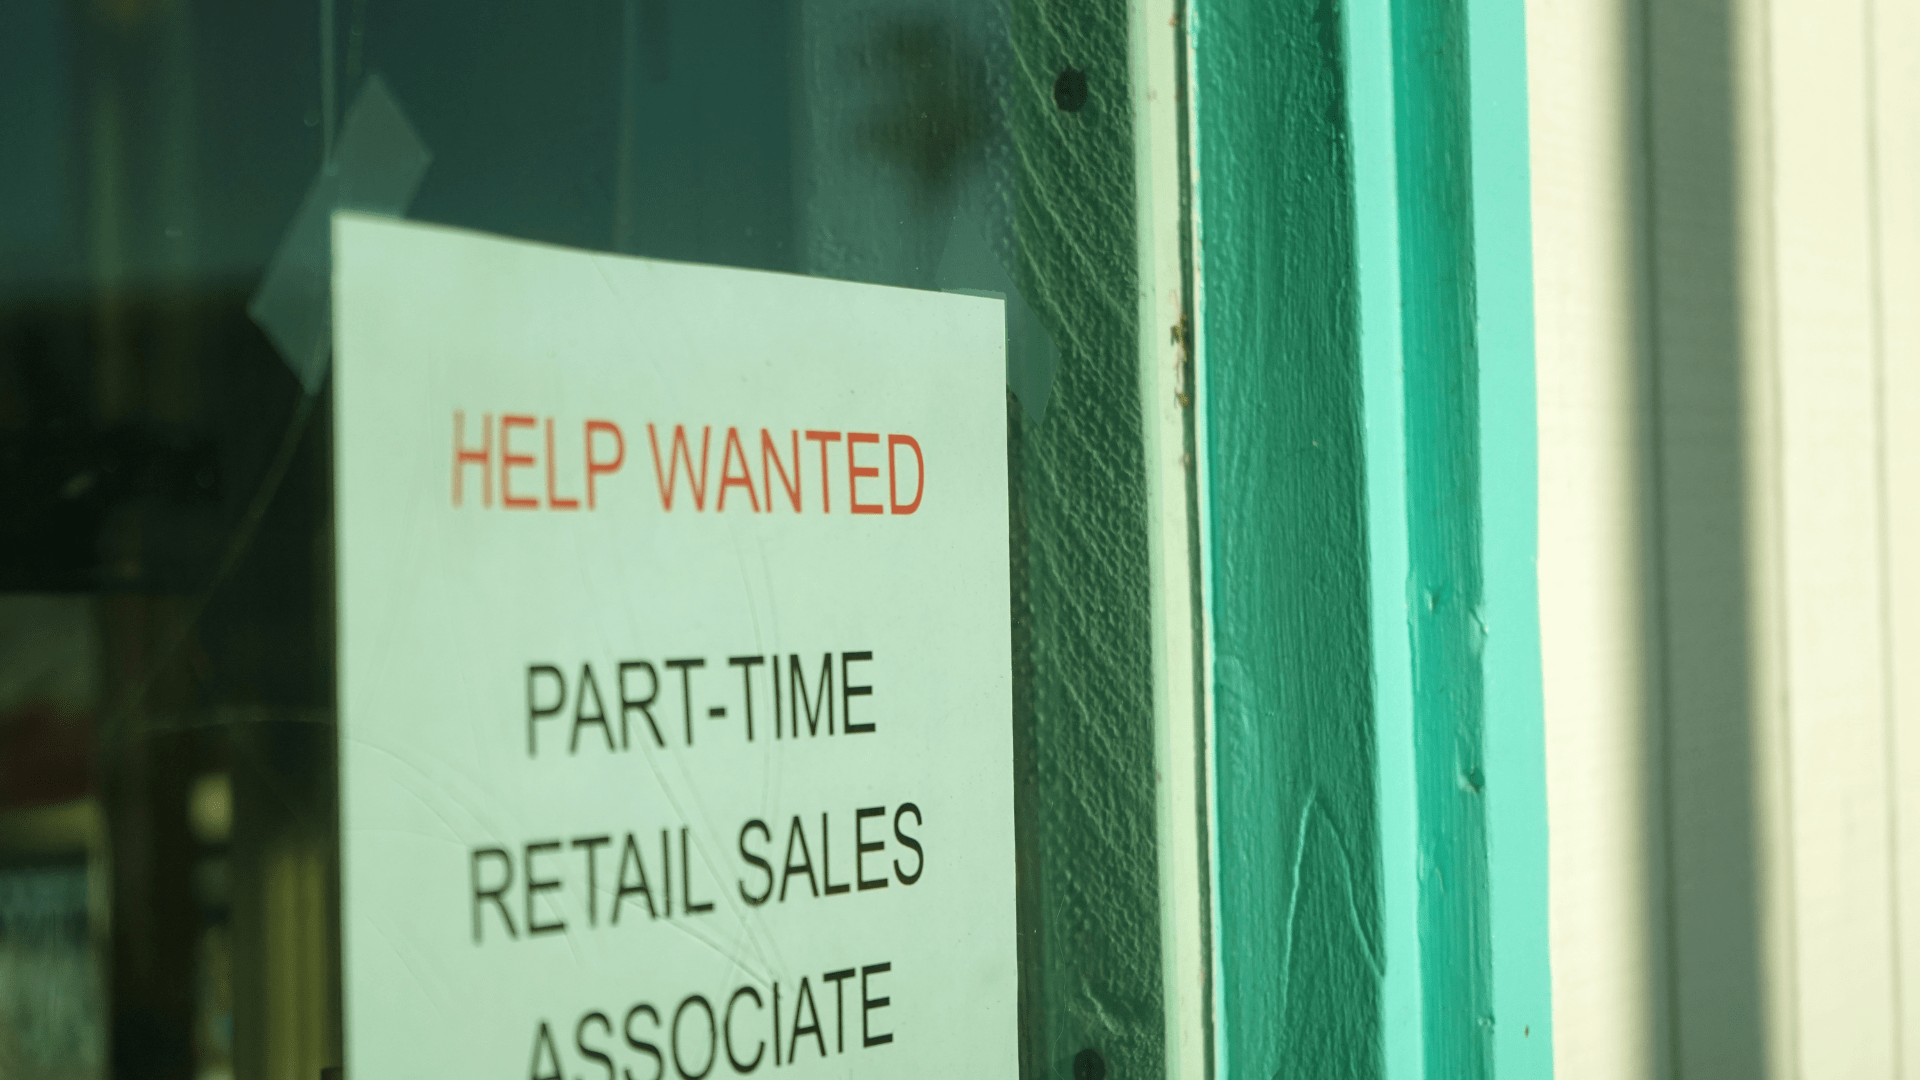 Significant Staffing Crisis in Canada as Retailers Reopen: Feature